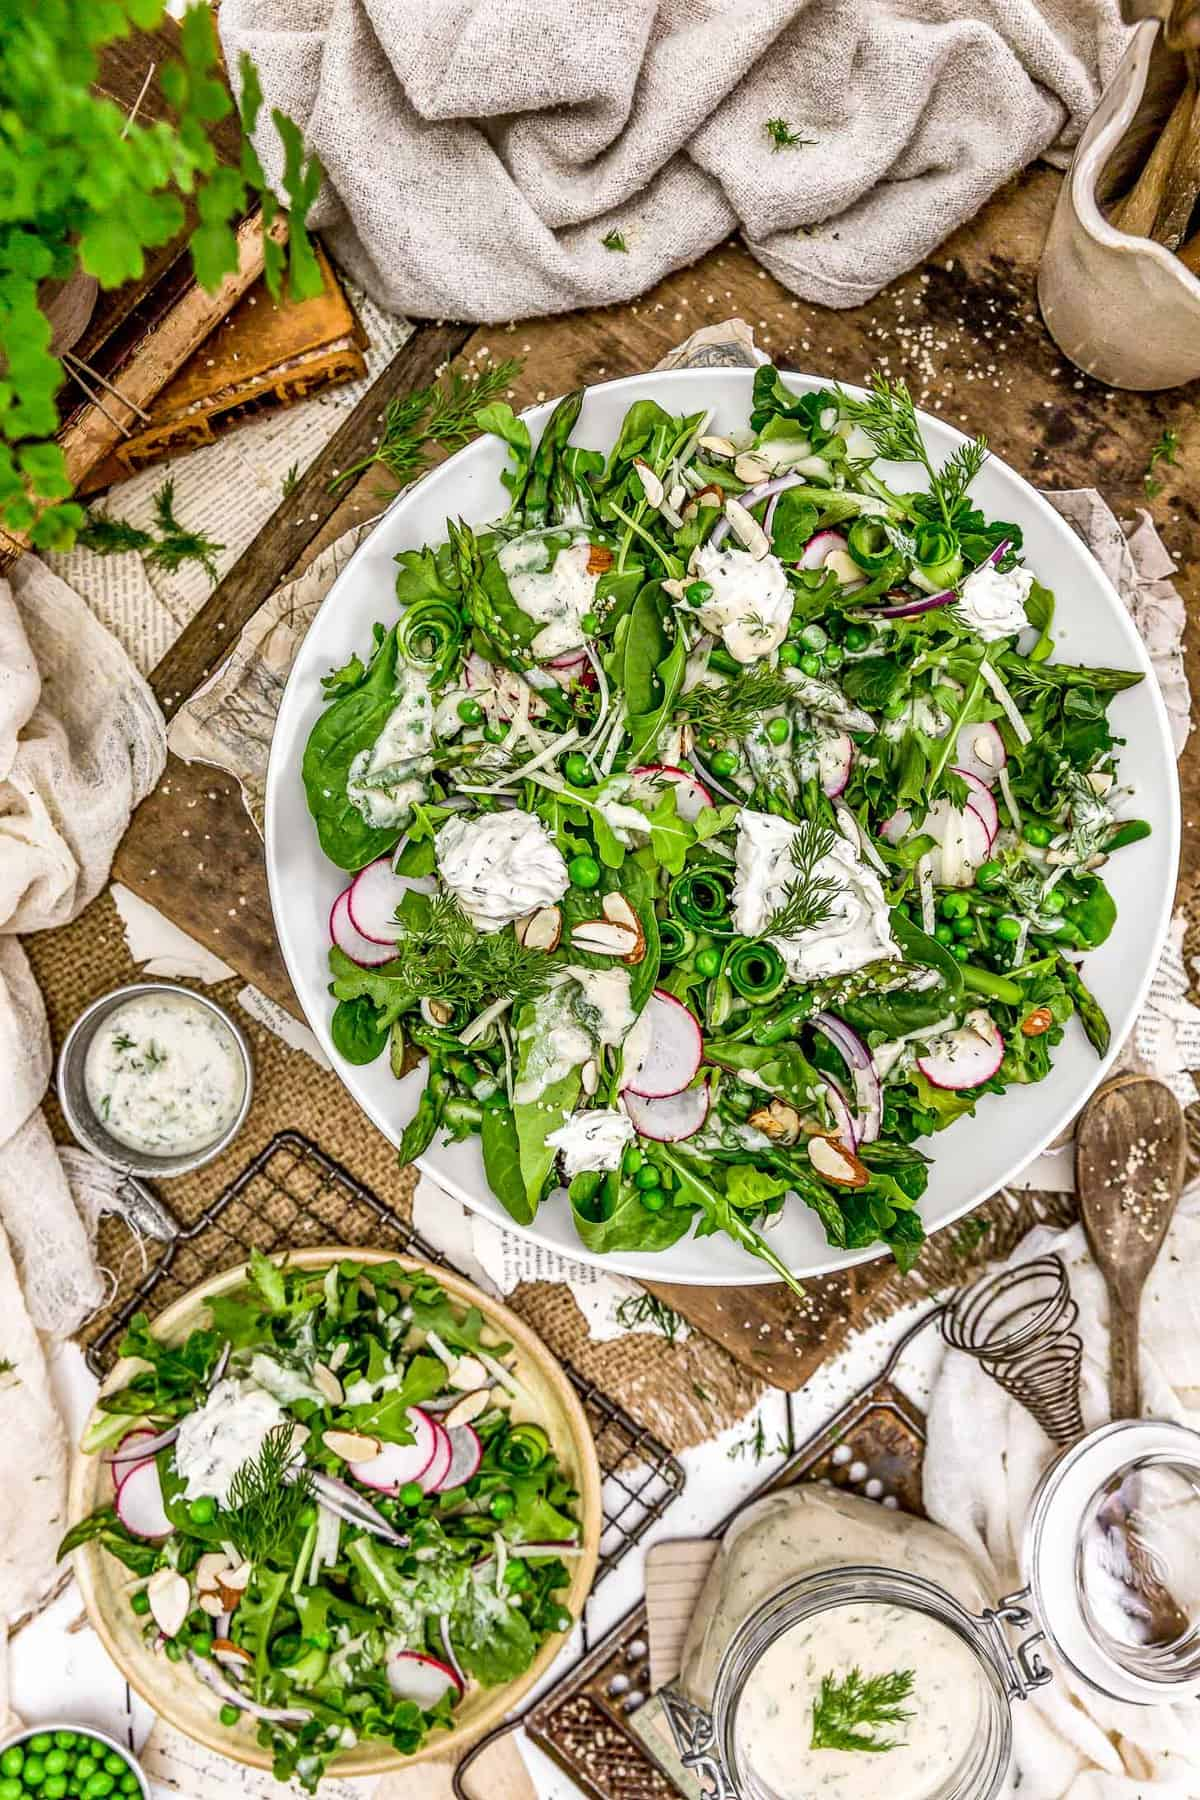 Tablescape of Creamy Dill Dressing